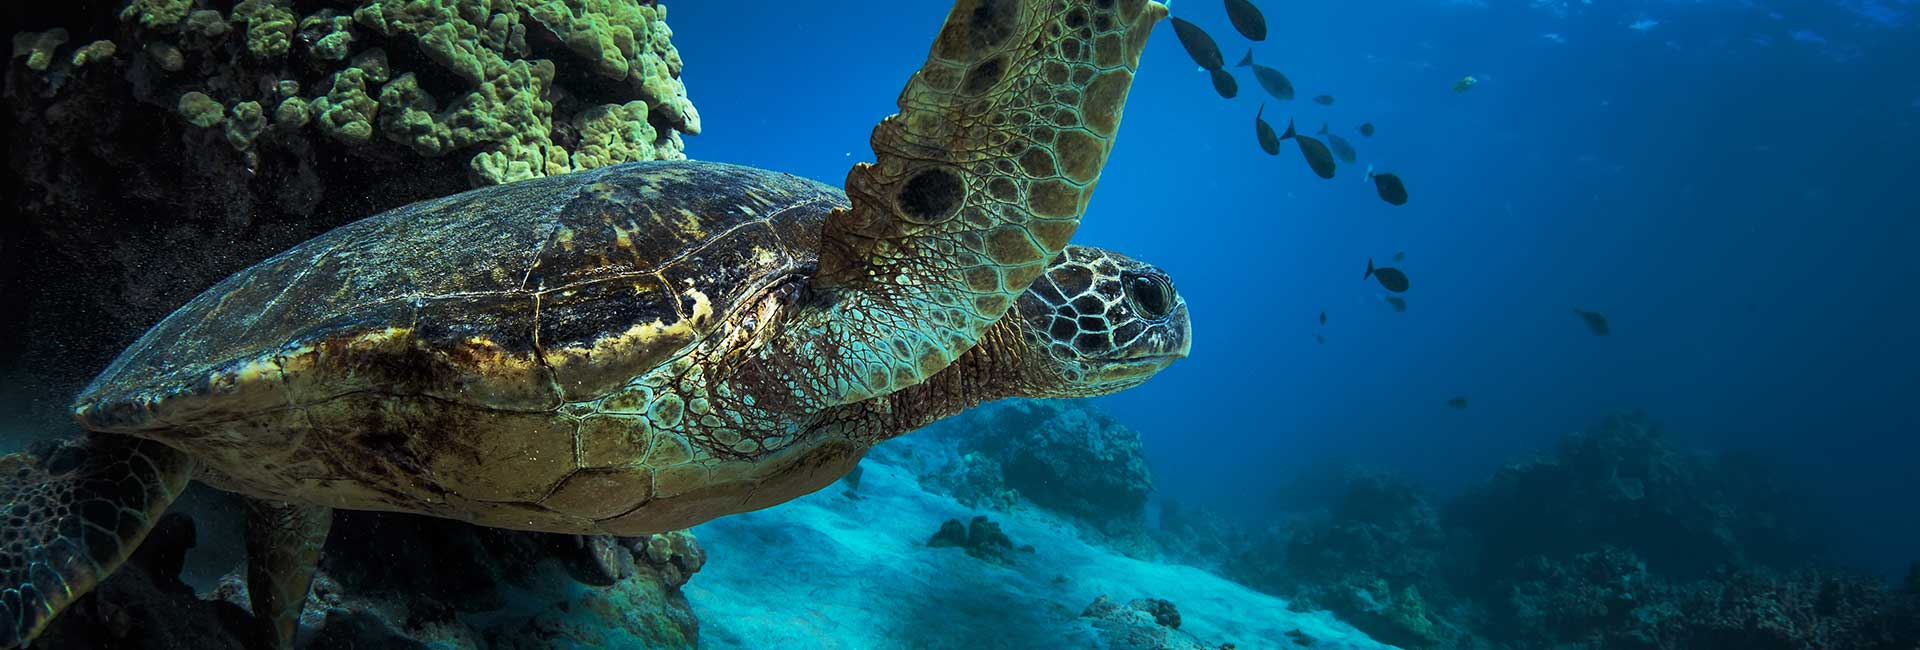 close up on a turtle